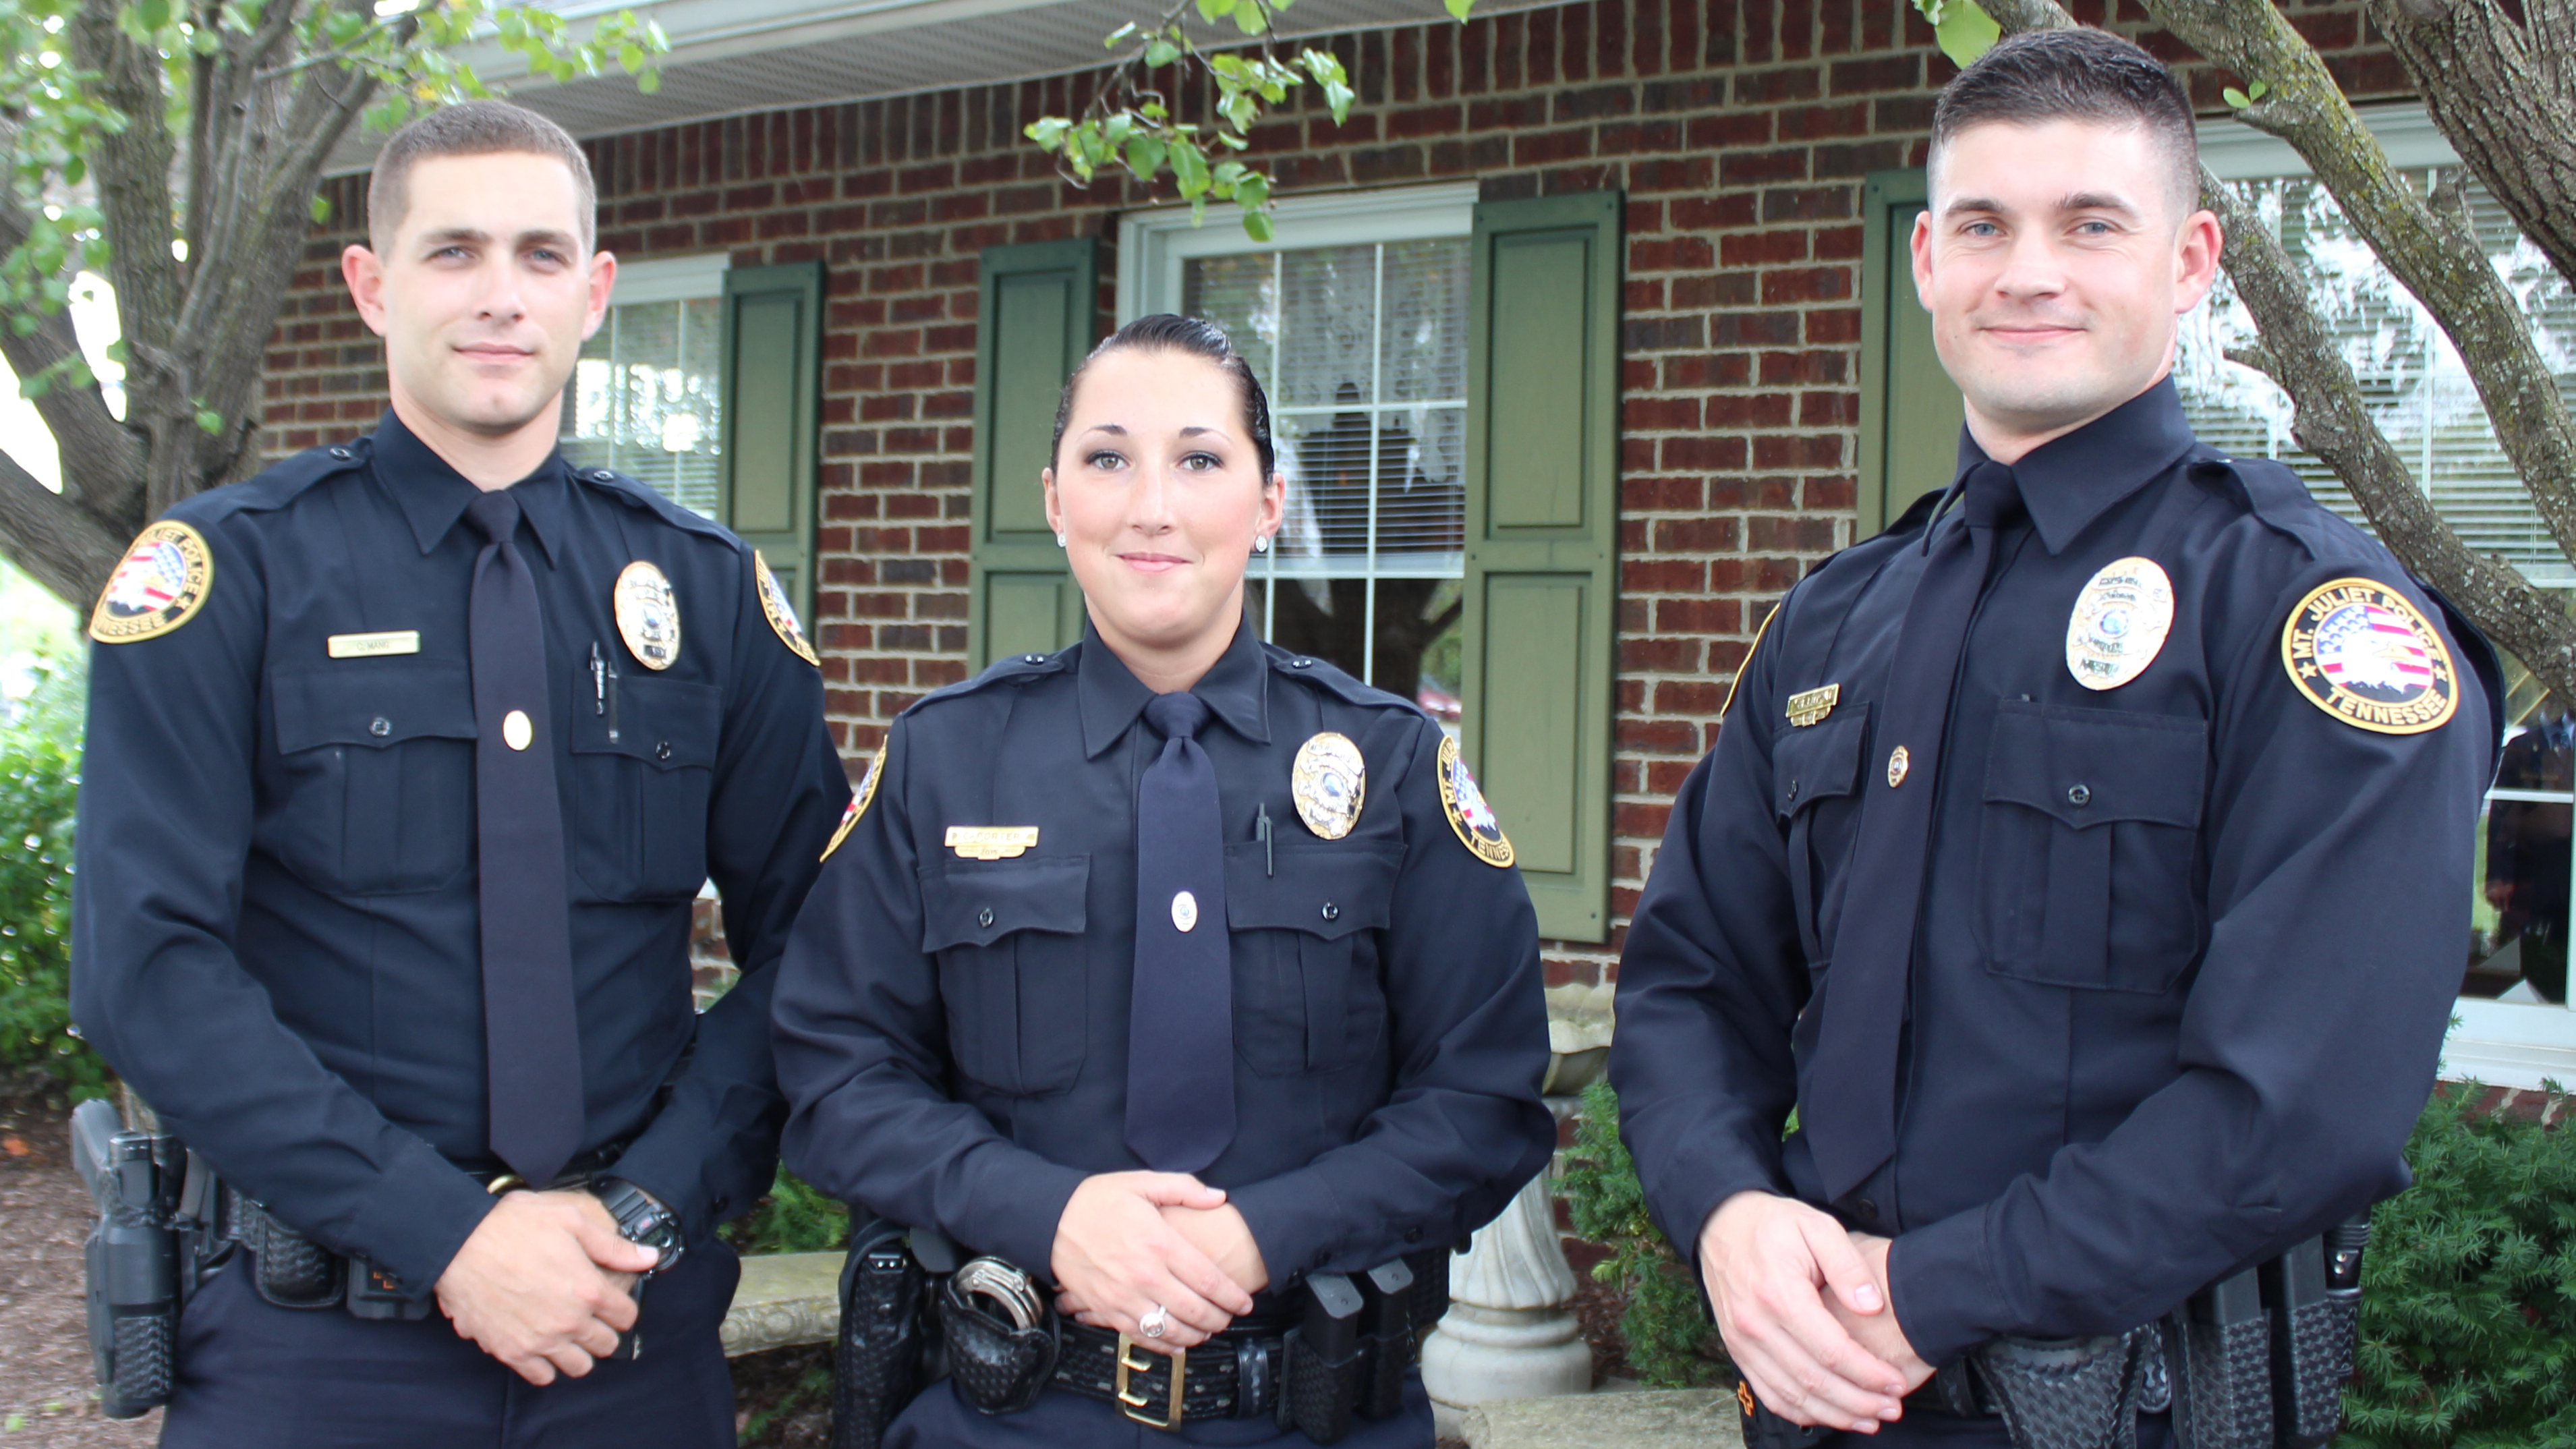 Mt. Juliet Police Officers Graduate from Police Academy – Mt. Juliet Police Newsroom